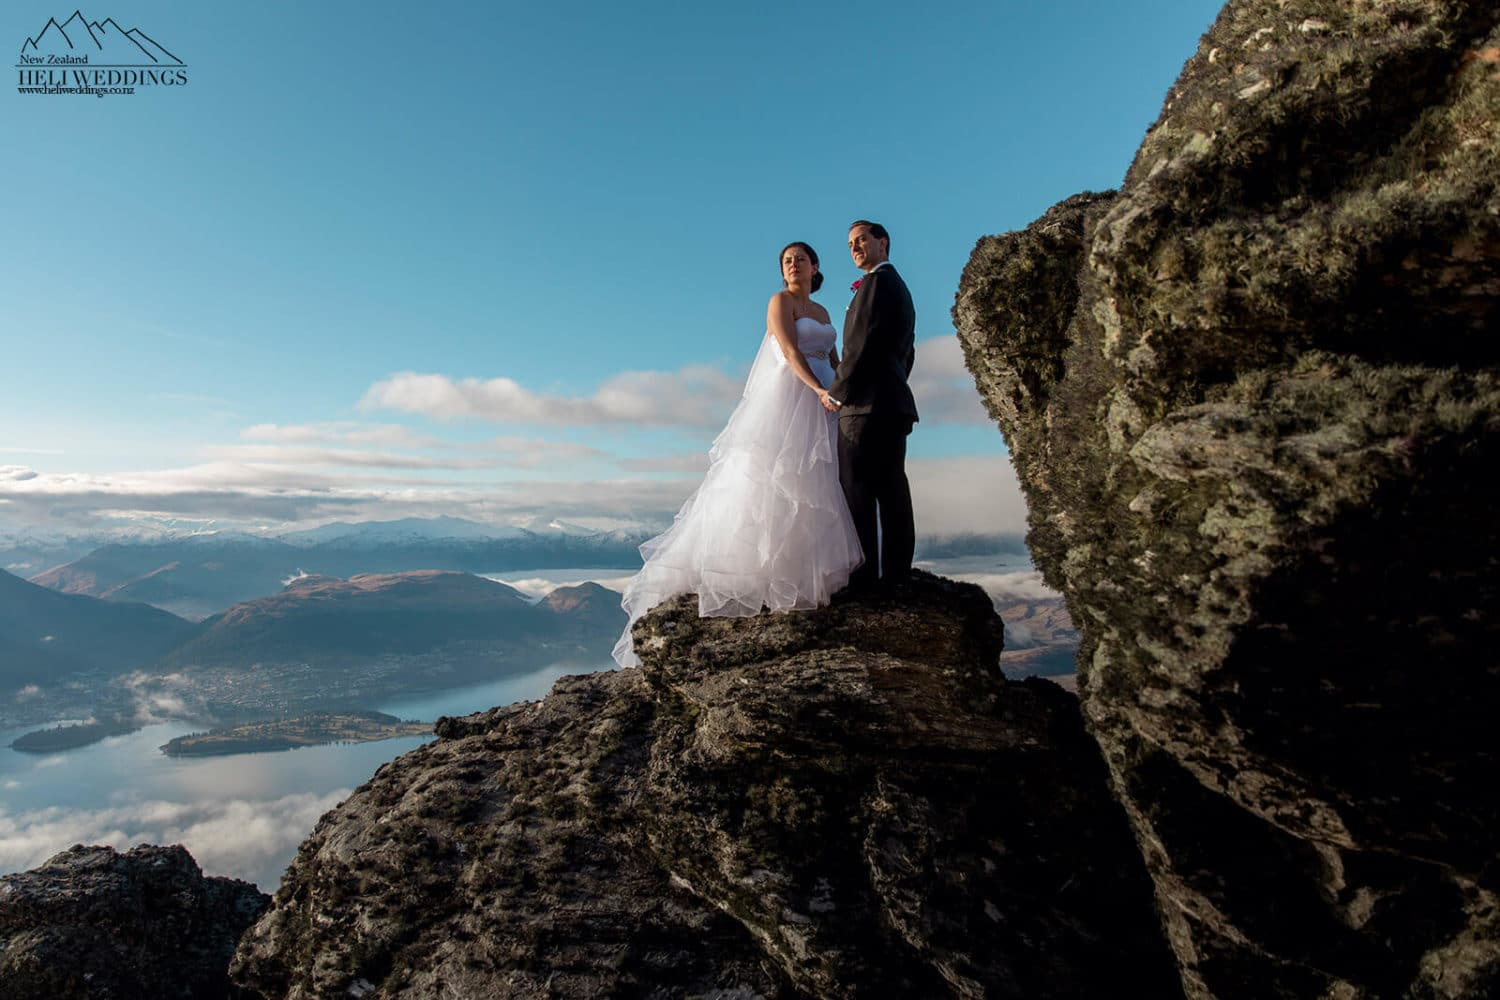 Beautiful mountain Wedding in New Zealand, destination elopement wedding